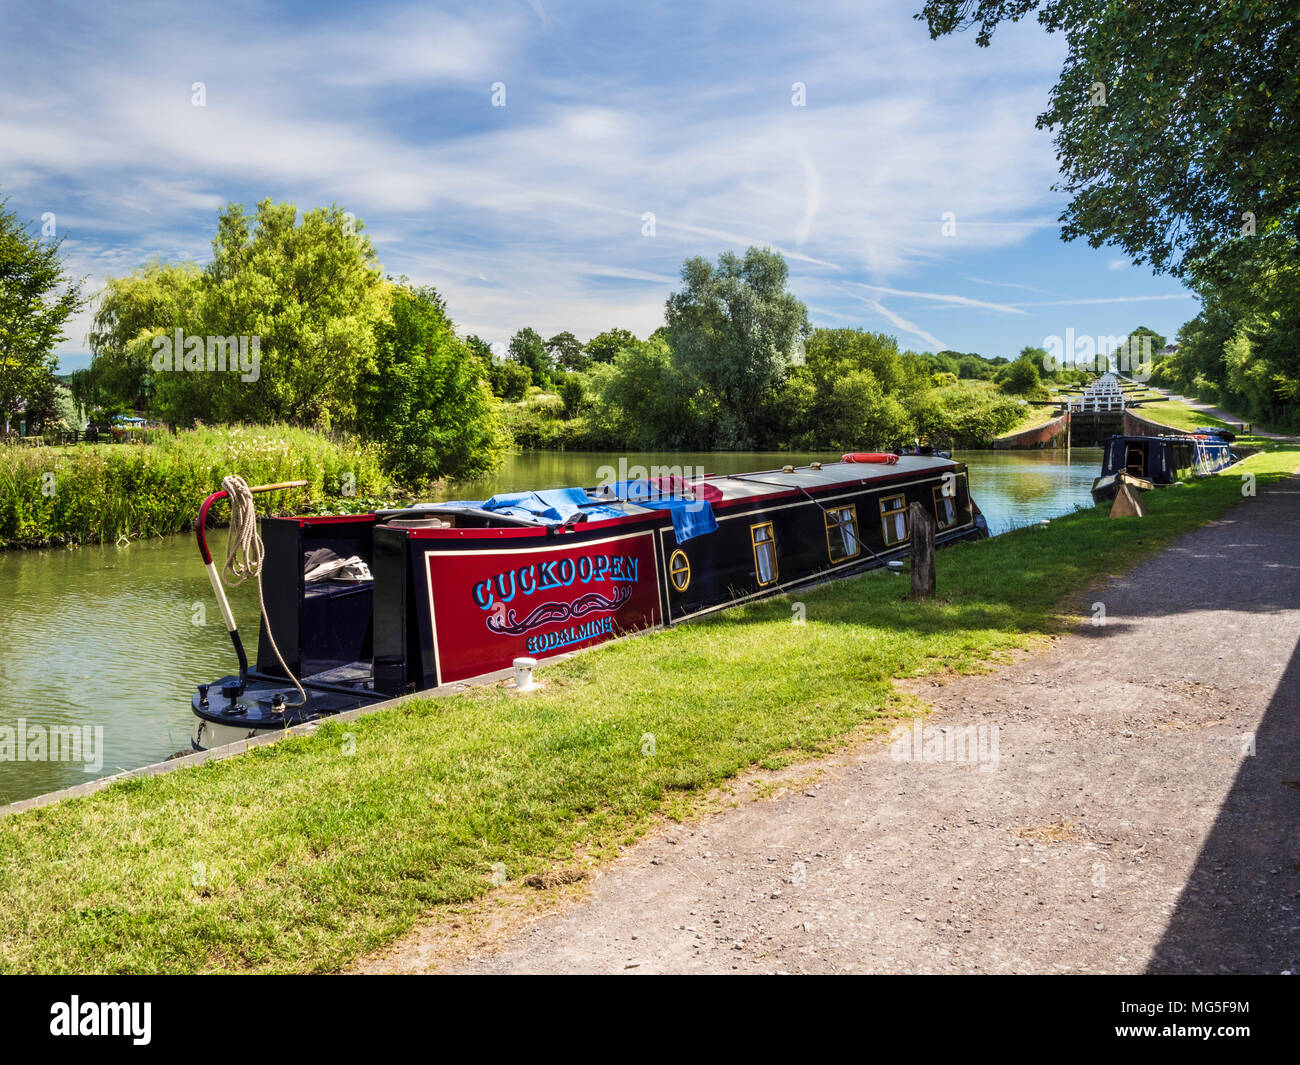 Houseboats moored on the Kennet and Avon Canal near the famous flight of locks at Caen Hill  in Wiltshire. - Stock Image